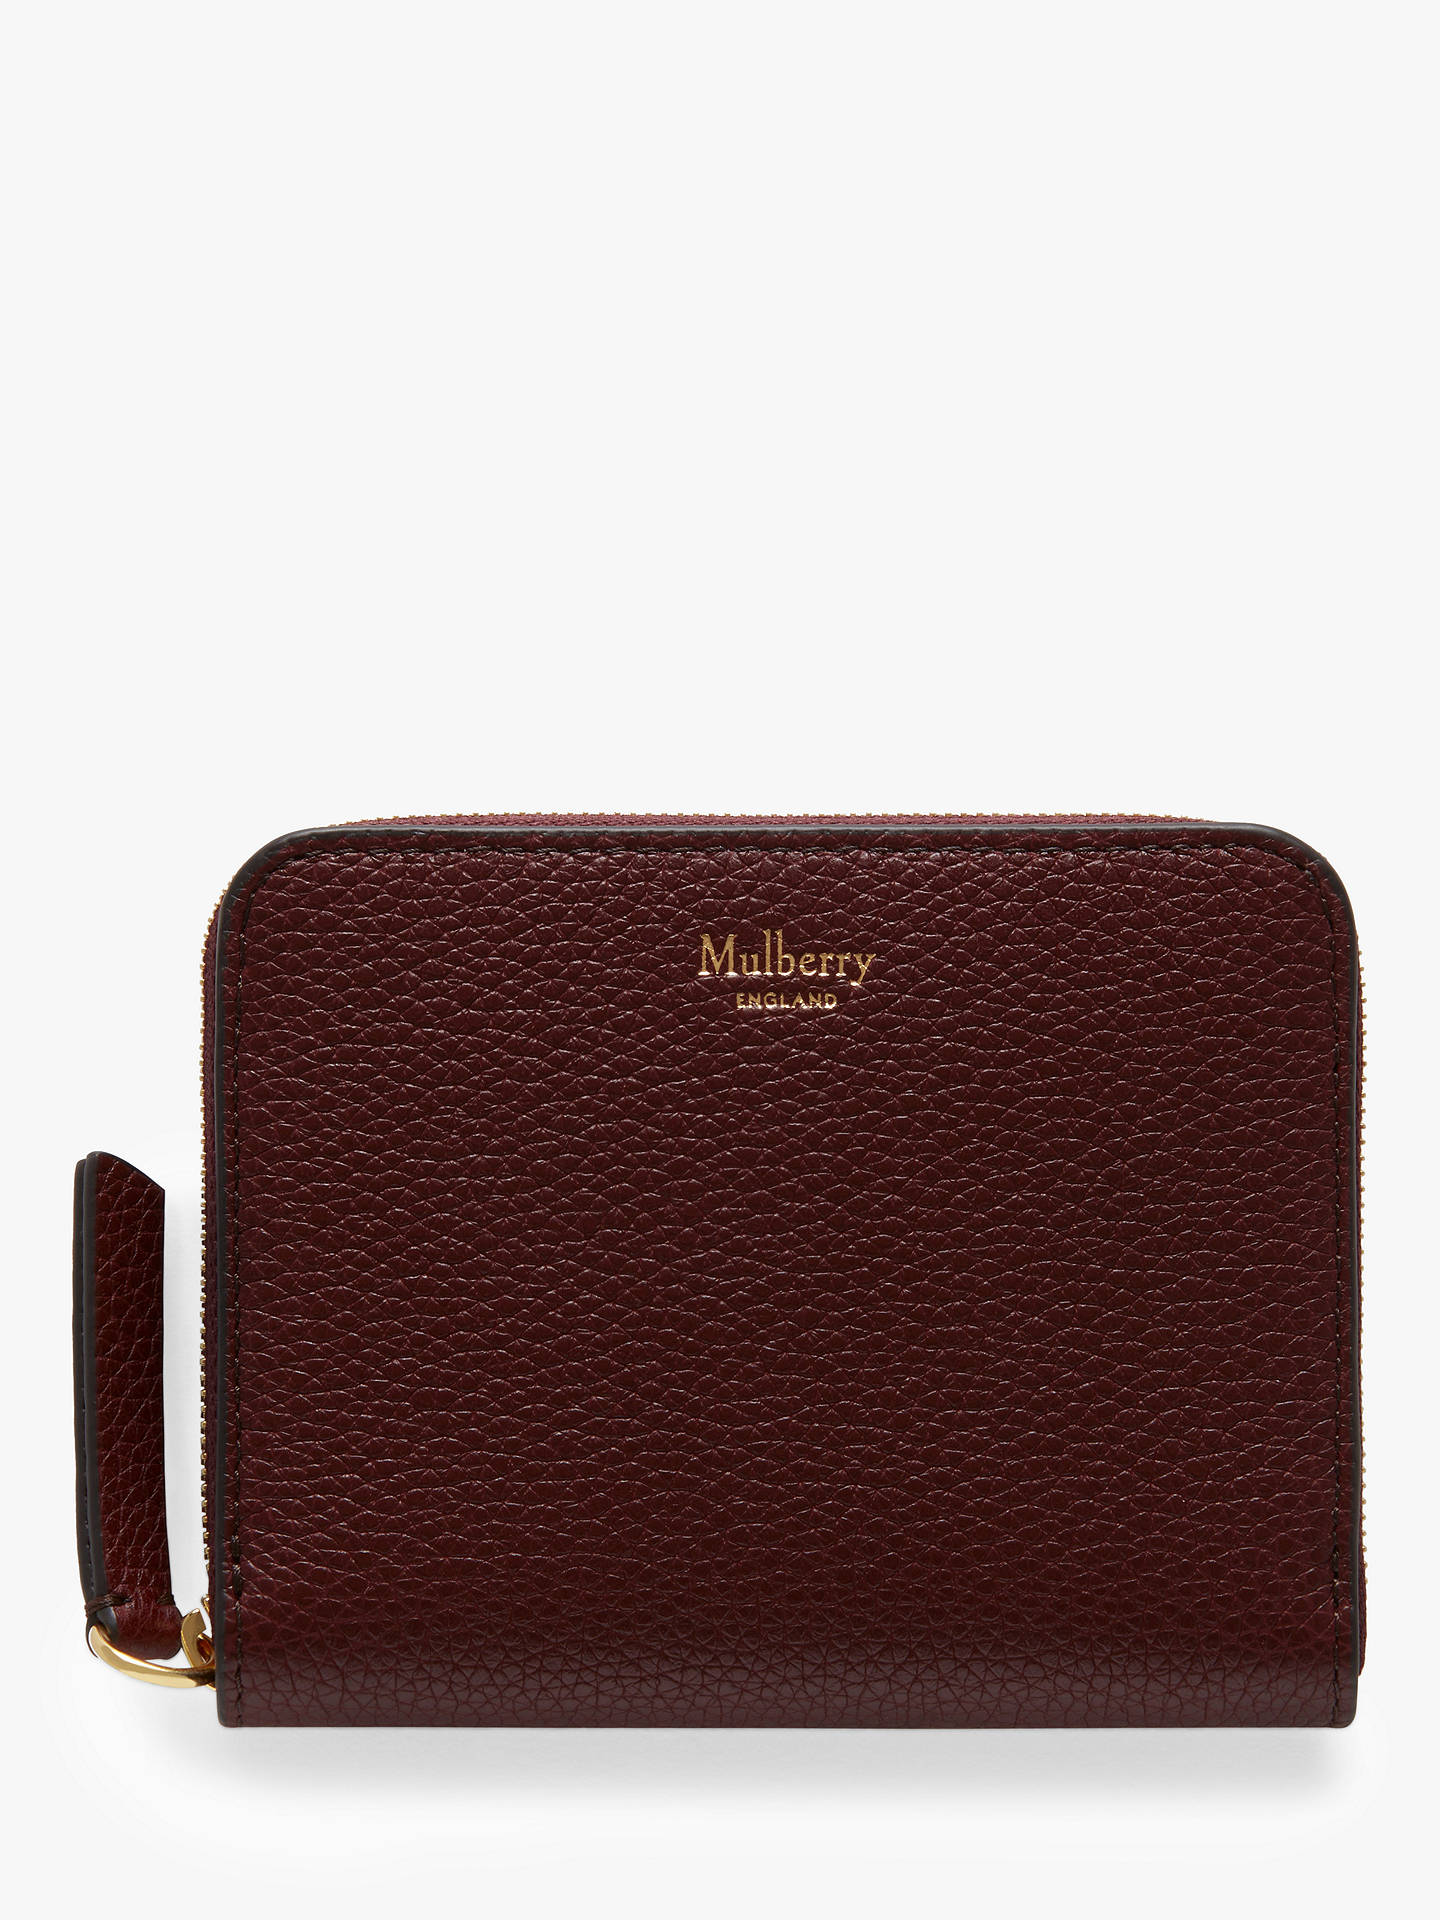 c31d49604aacc Buy Mulberry Small Classic Grain Leather Small Zip Around Purse, Burgundy  Online at johnlewis.